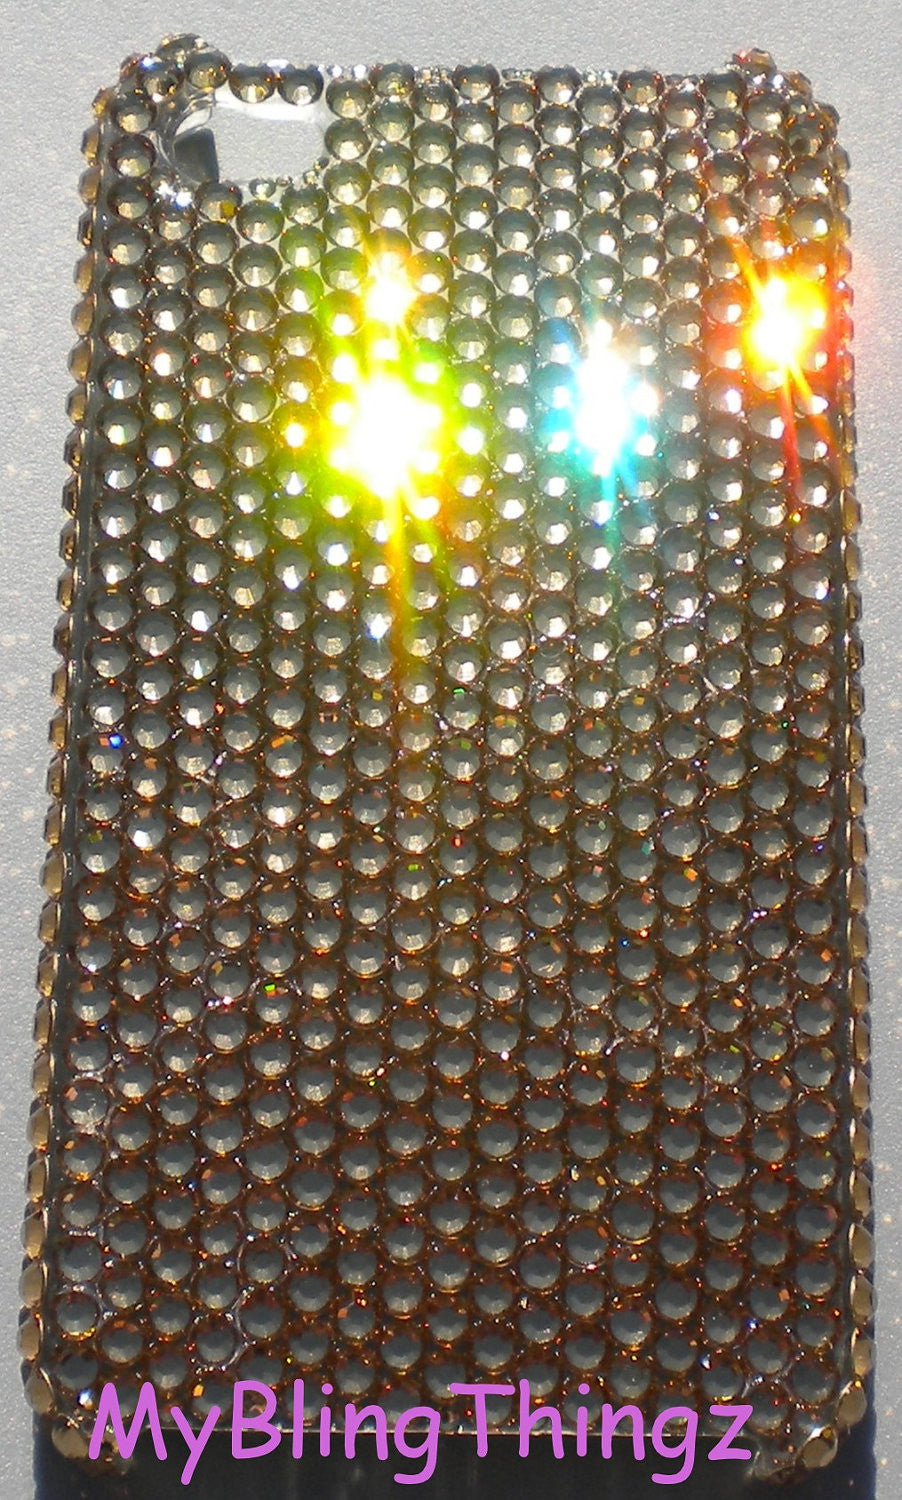 For iPhone 5 5S SE - GOLD Light Colorado Topaz Crystal Diamond Rhinestone BLING Back Case made with 100% Swarovski Elements